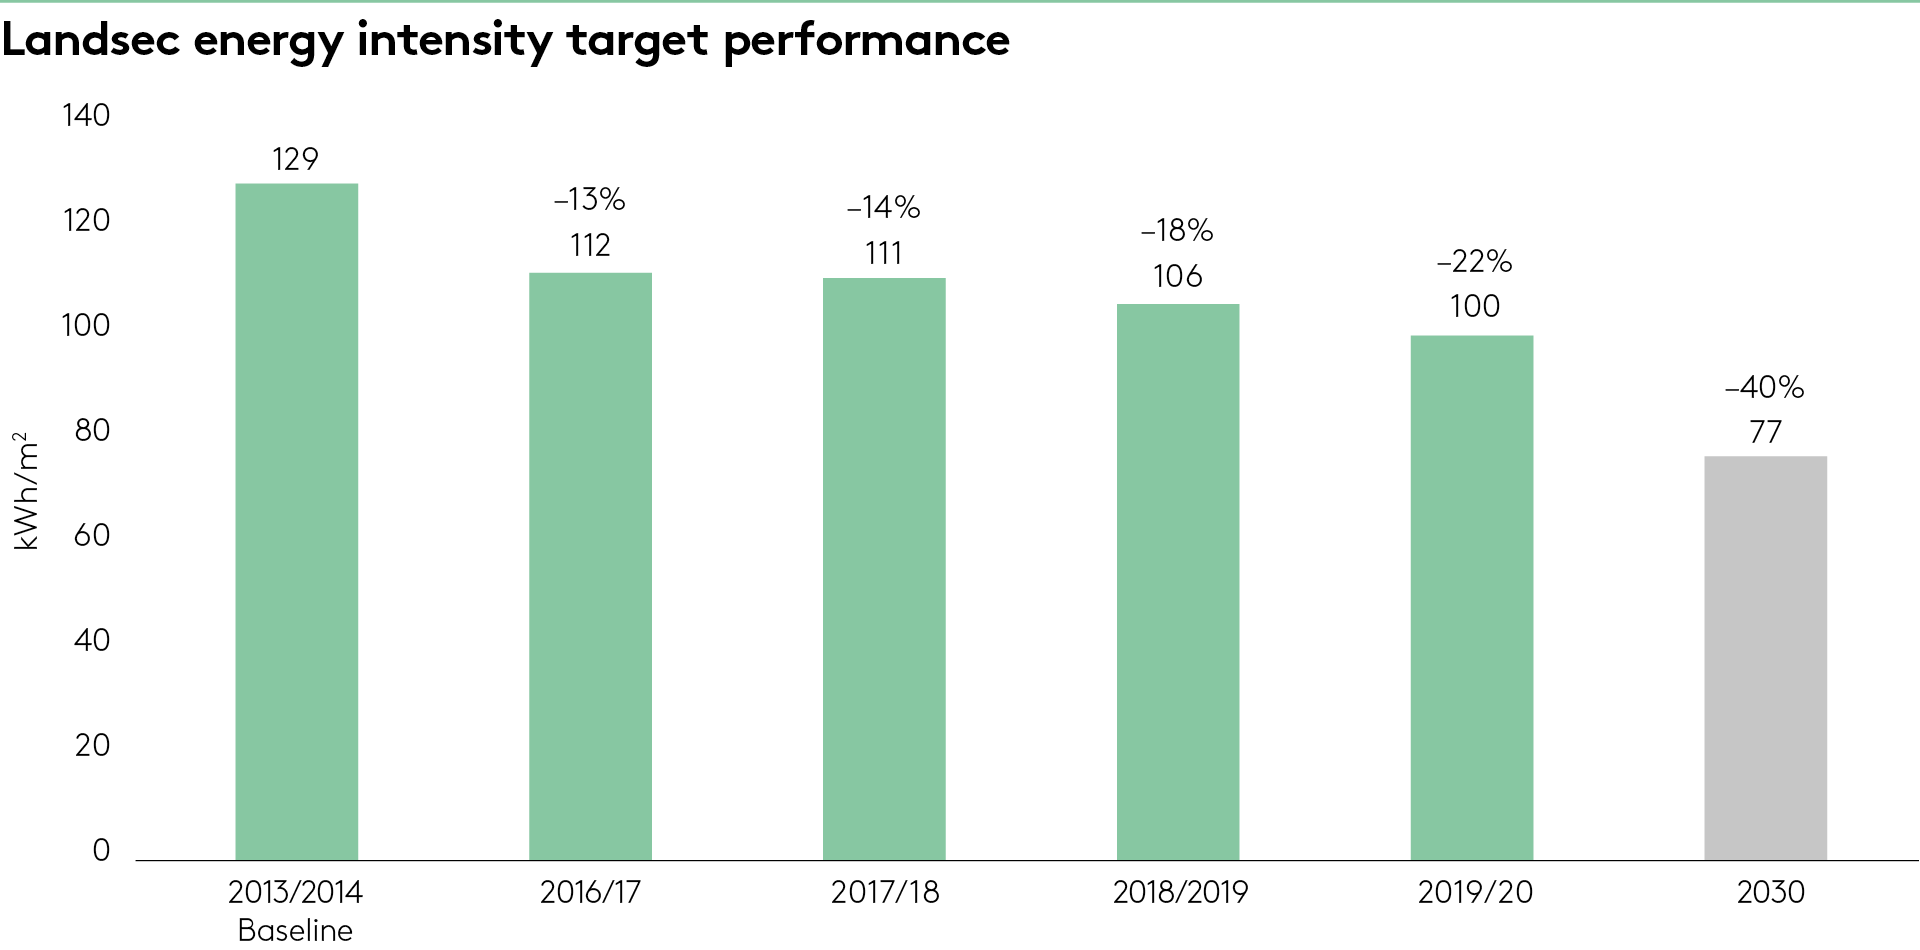 Energy intensity target performance